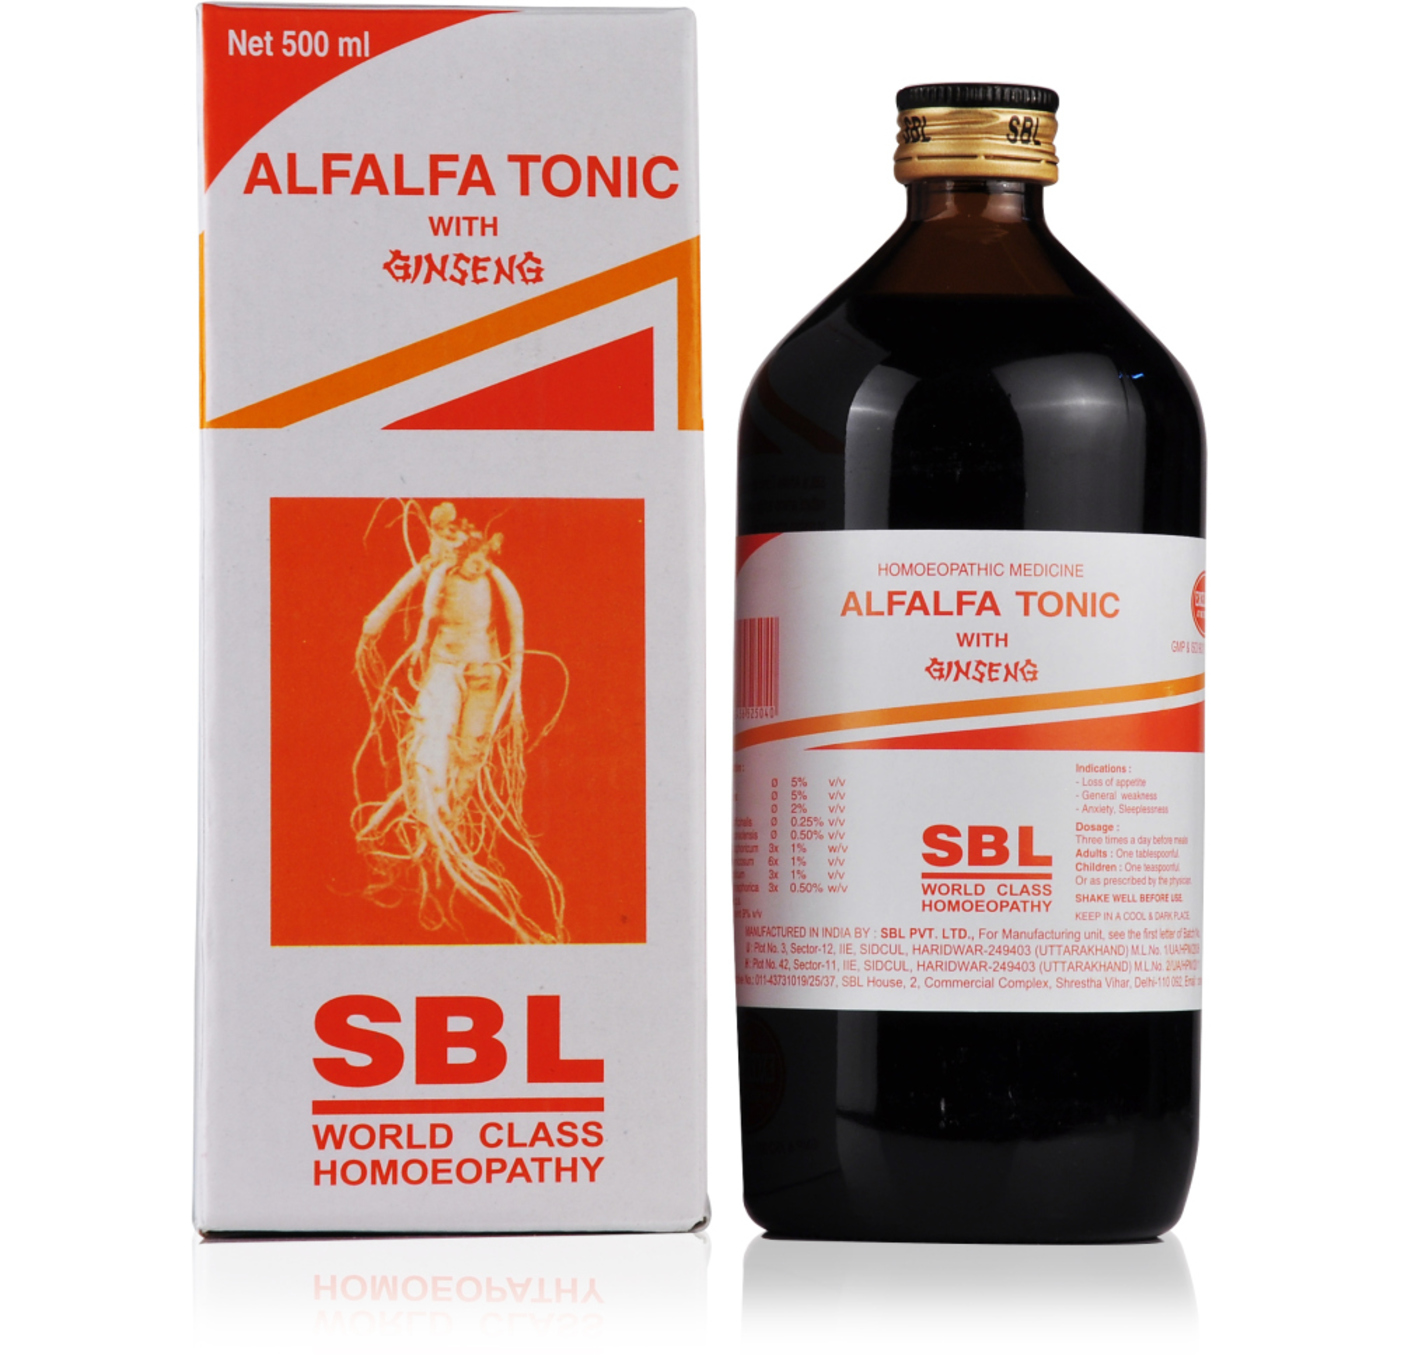 SBL Alfalfa Tonic with Ginseng Homeopathic Medicine style=